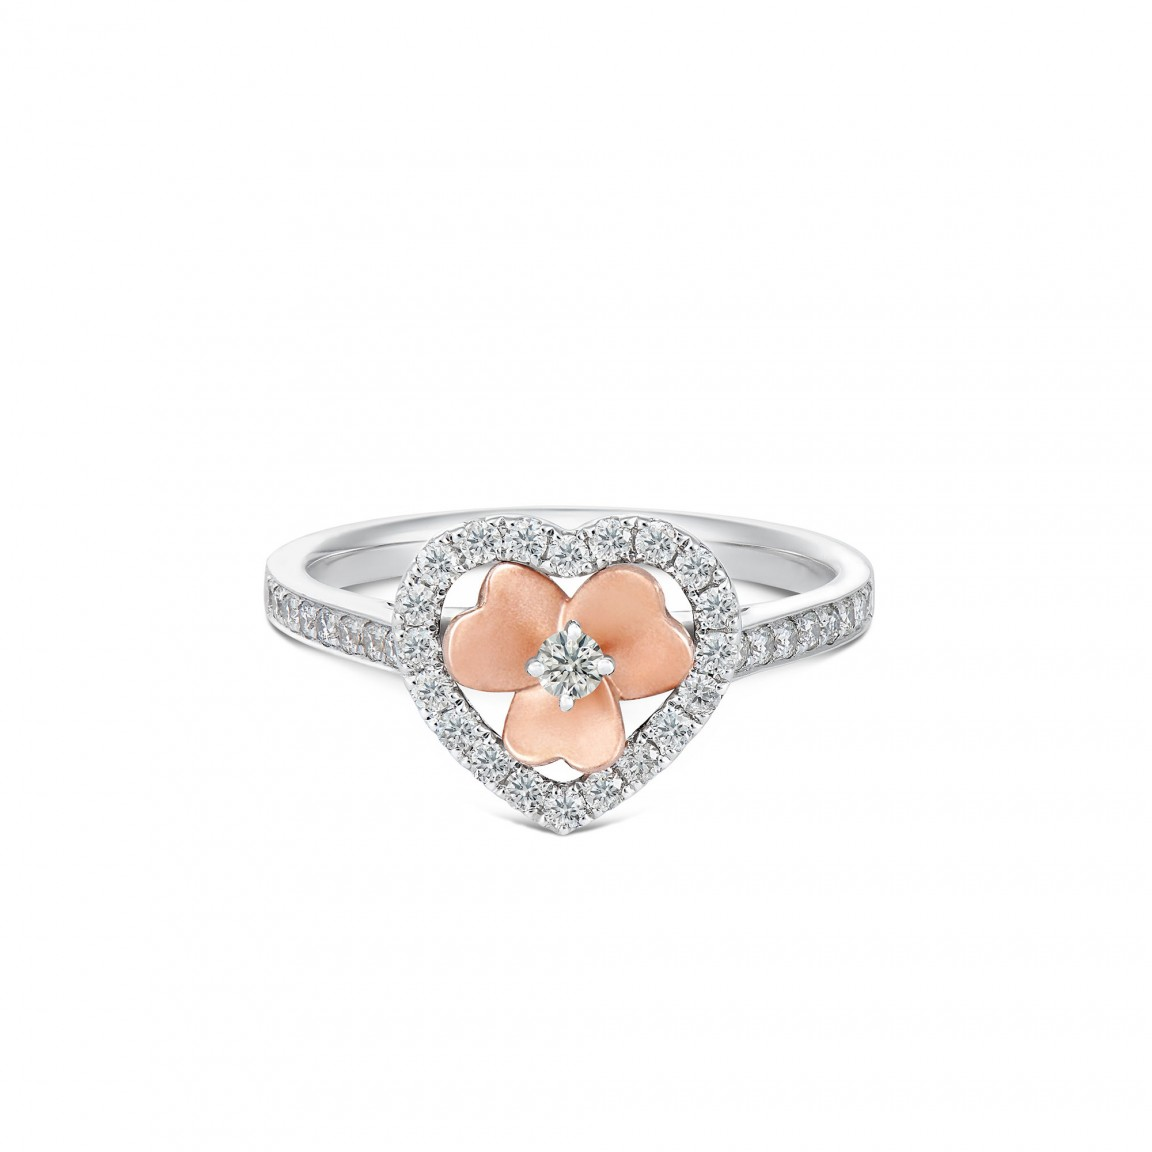 Soleluna ASTRA LoveStruck Diamond Ring